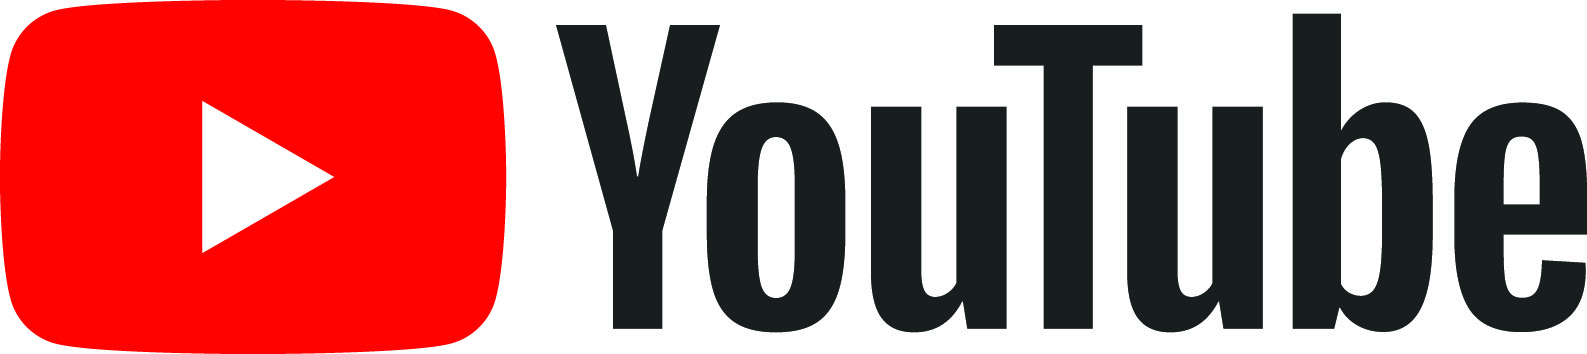 Youtube-Logo-Digital_Black.jpg